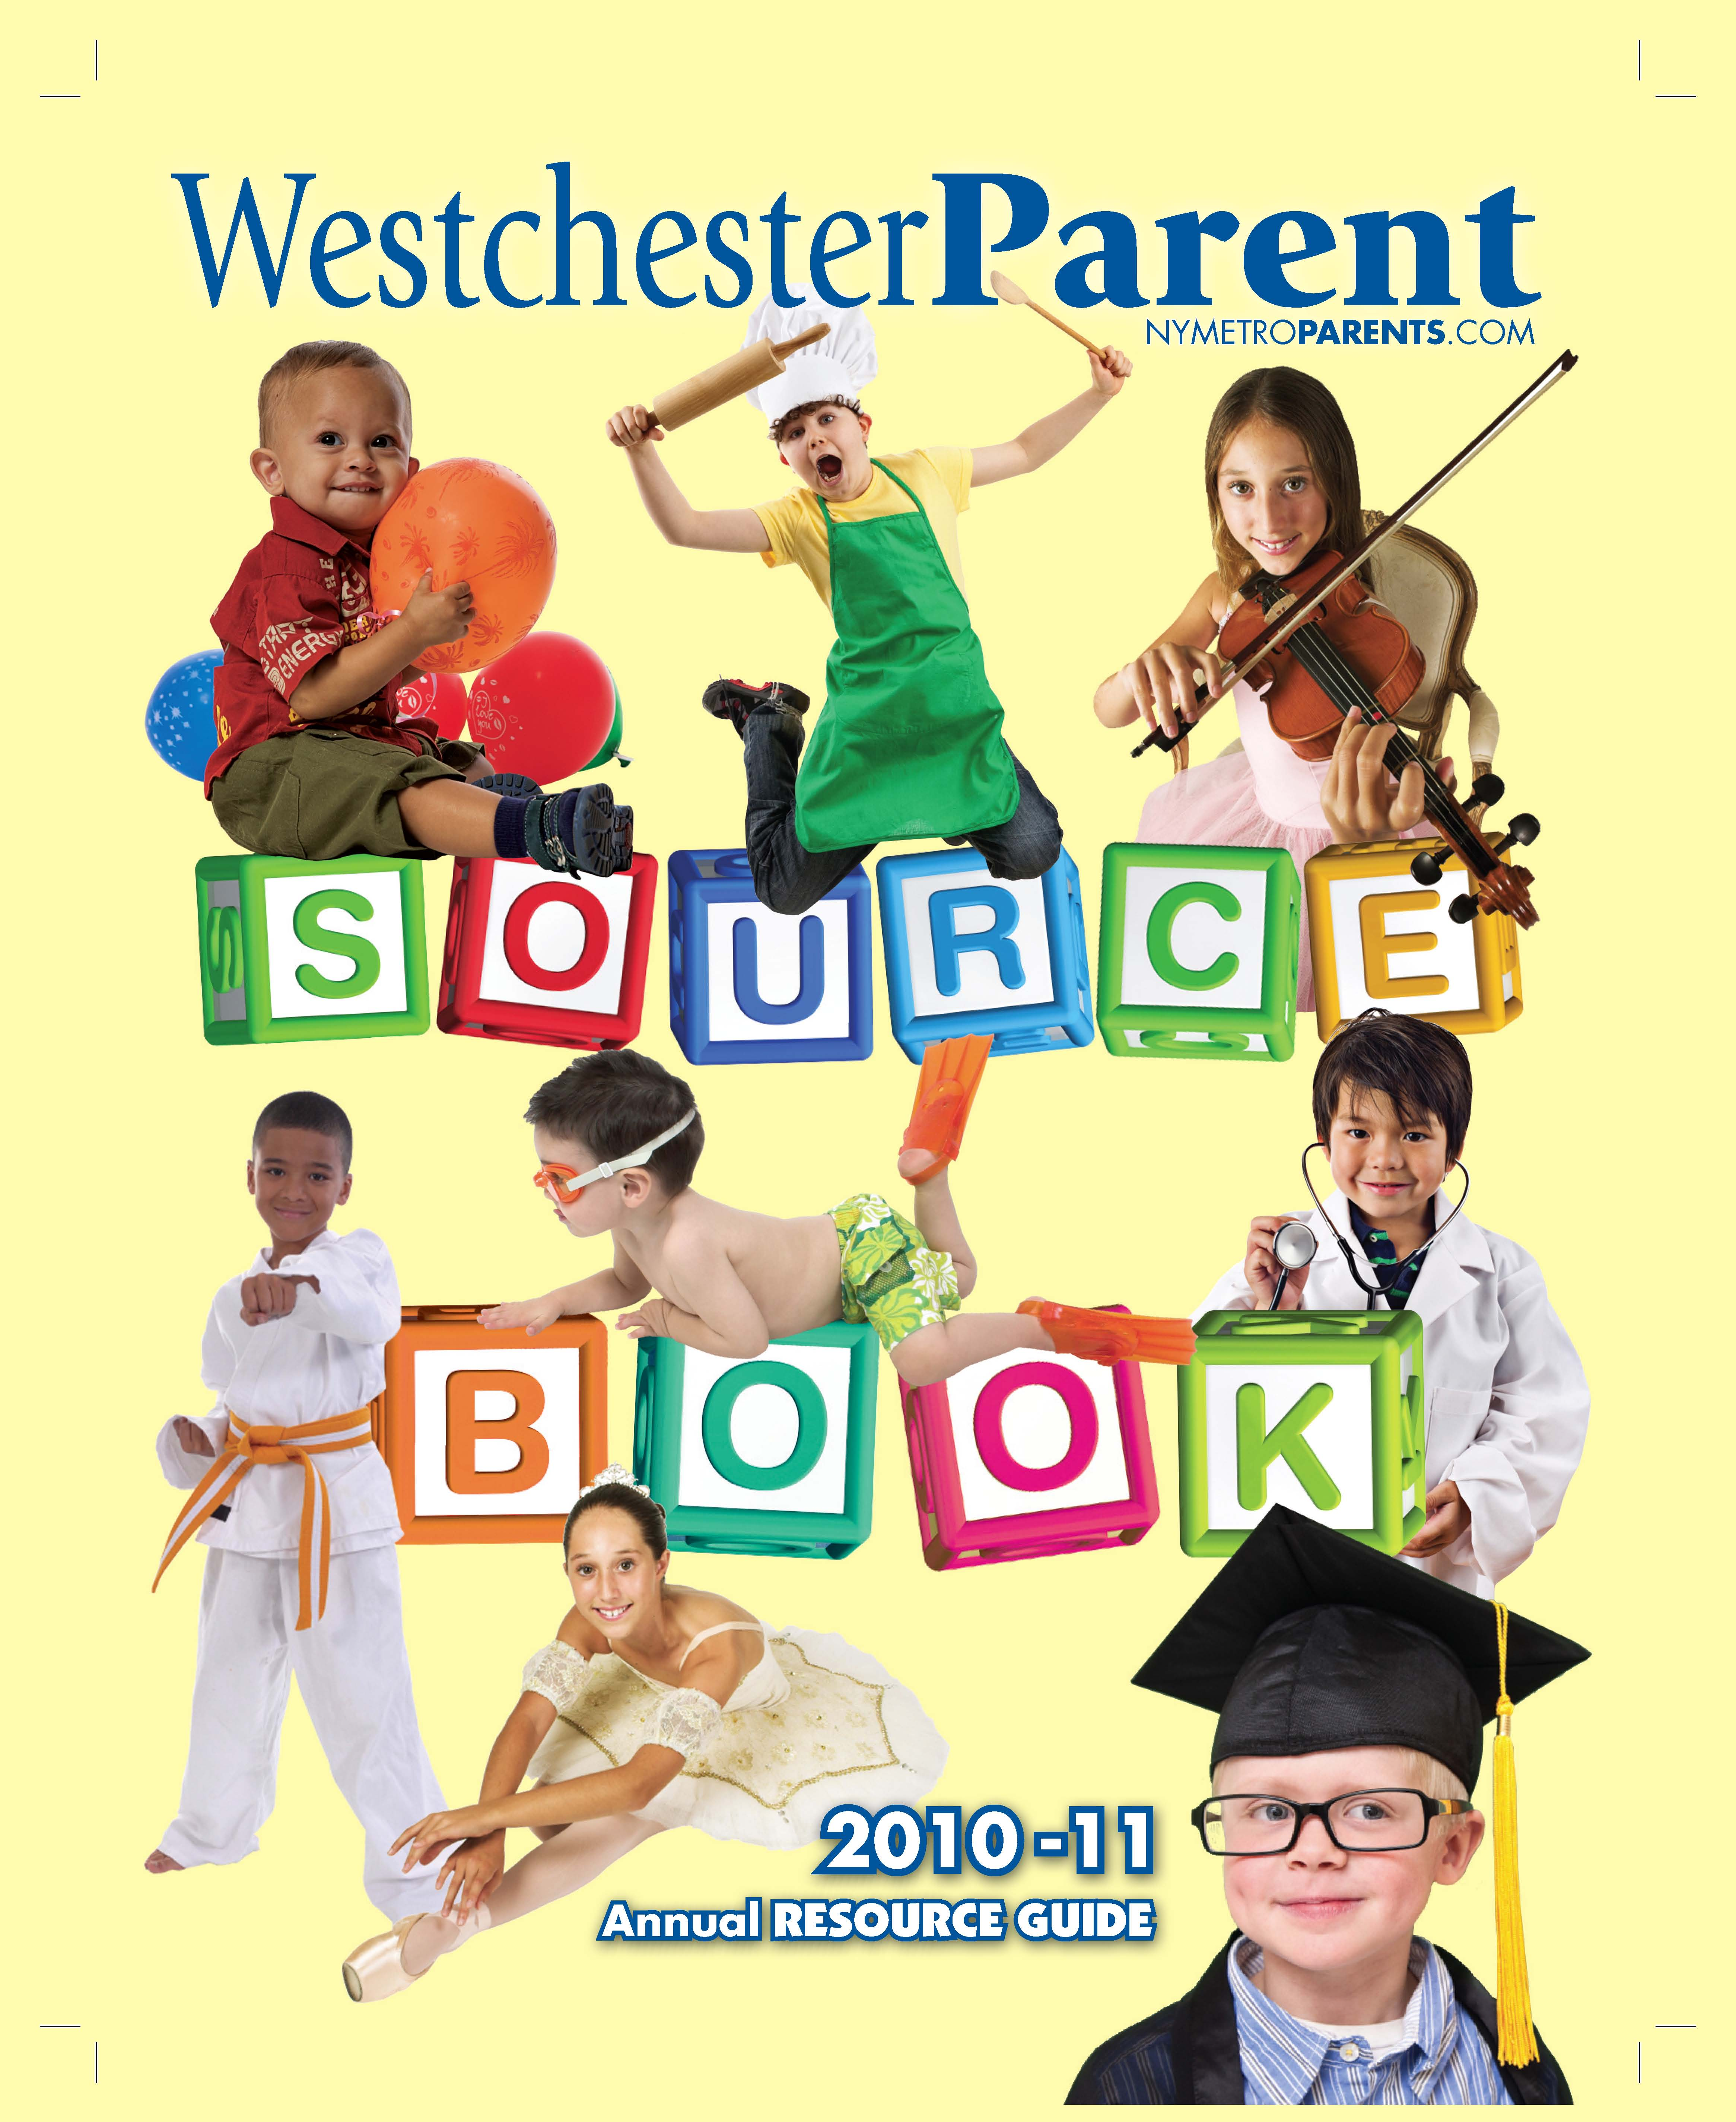 Westchester Parent magazine, Source Book July 2010